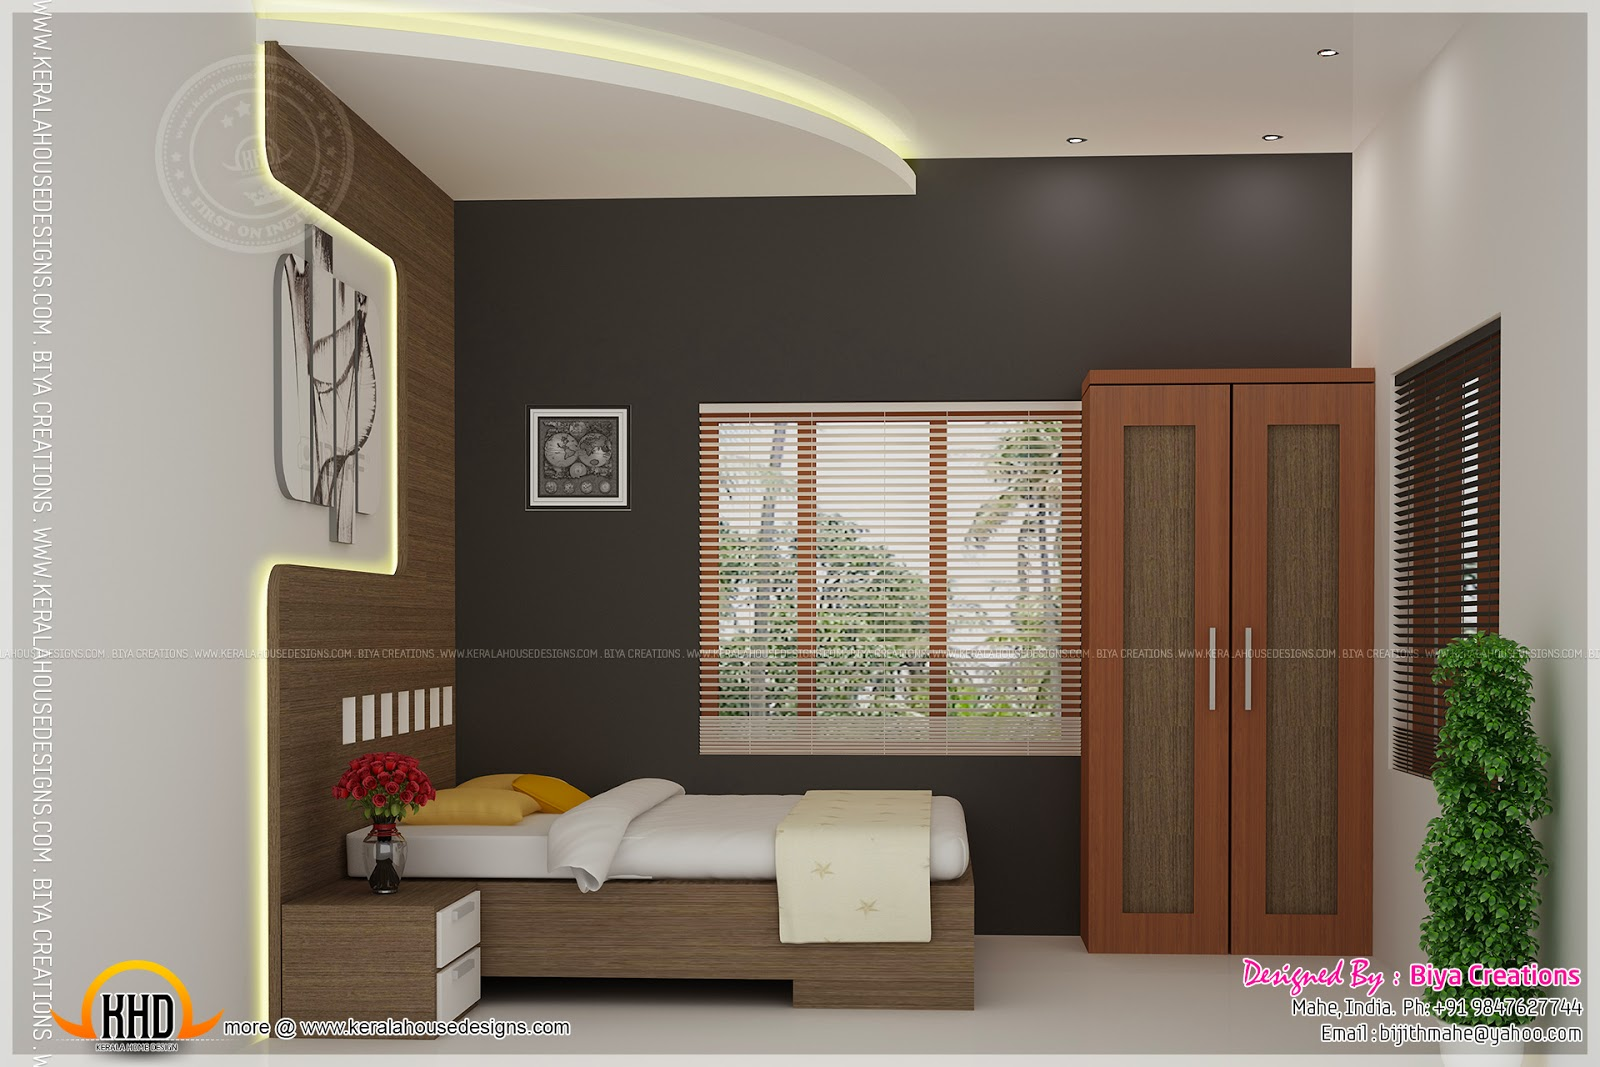 Bedroom kid bedroom and kitchen interior kerala home for Interior designs for bedrooms indian style